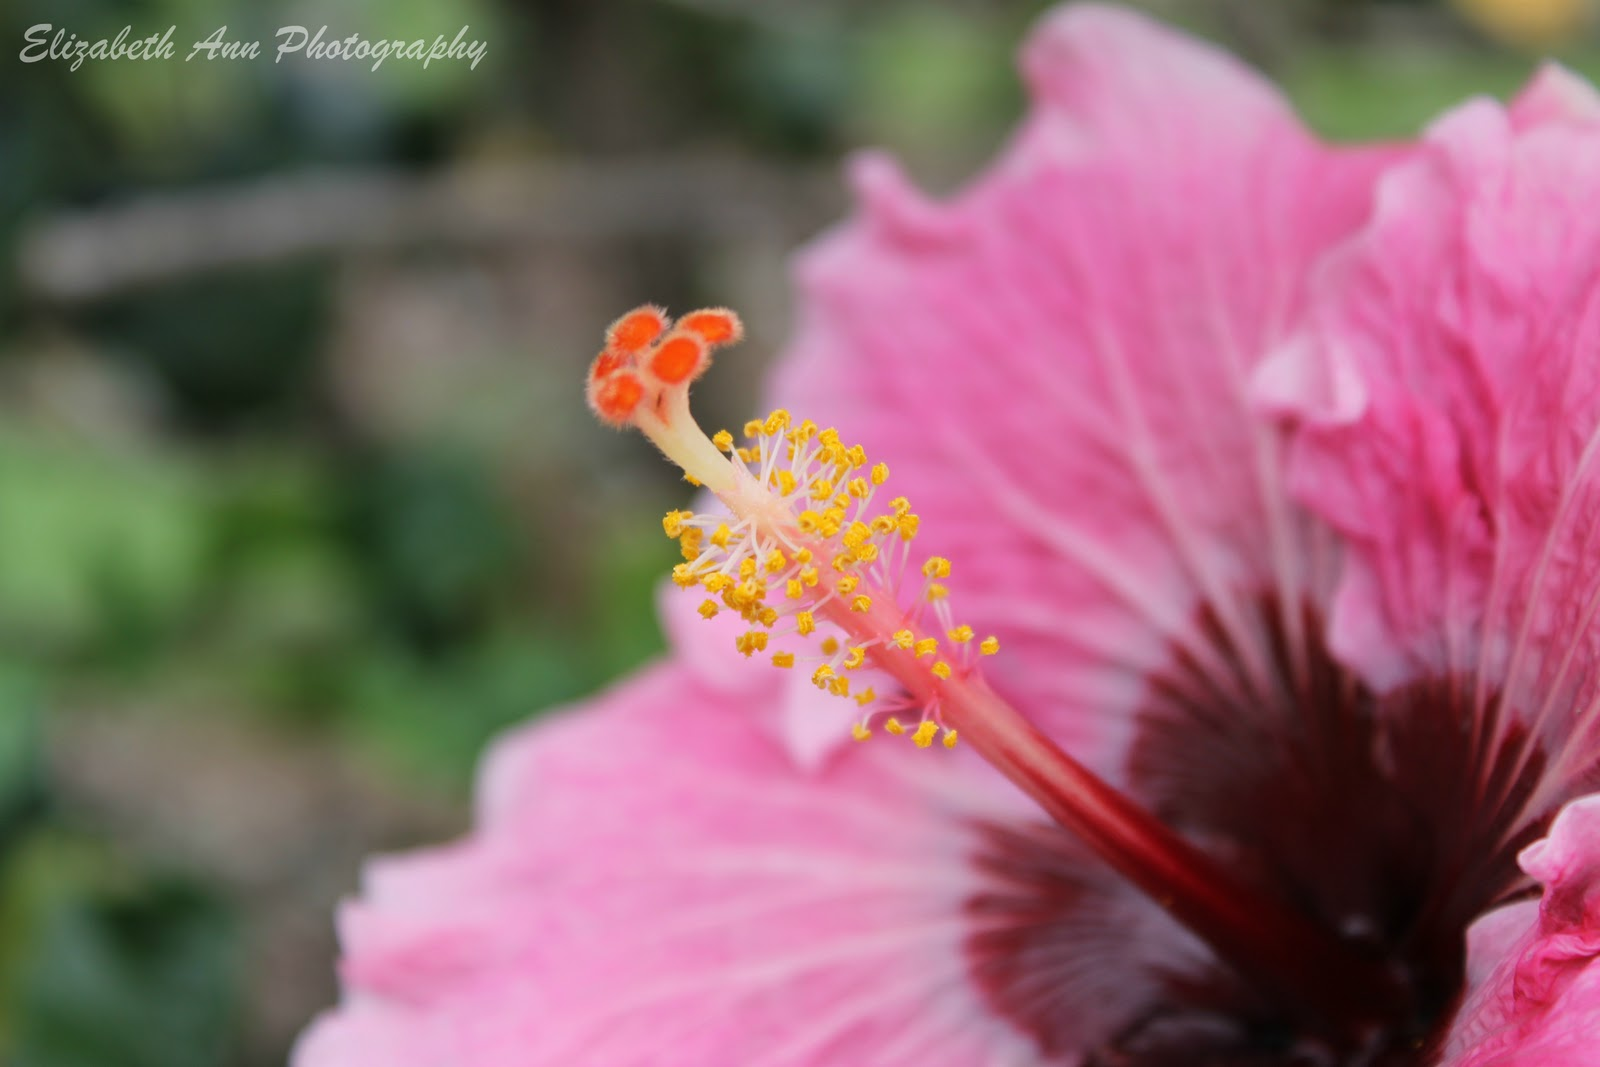 The greatest of these is love weekend flowers hibiscus beauty i love the variety of colours in this one from the petals to the pistil stamen structure izmirmasajfo